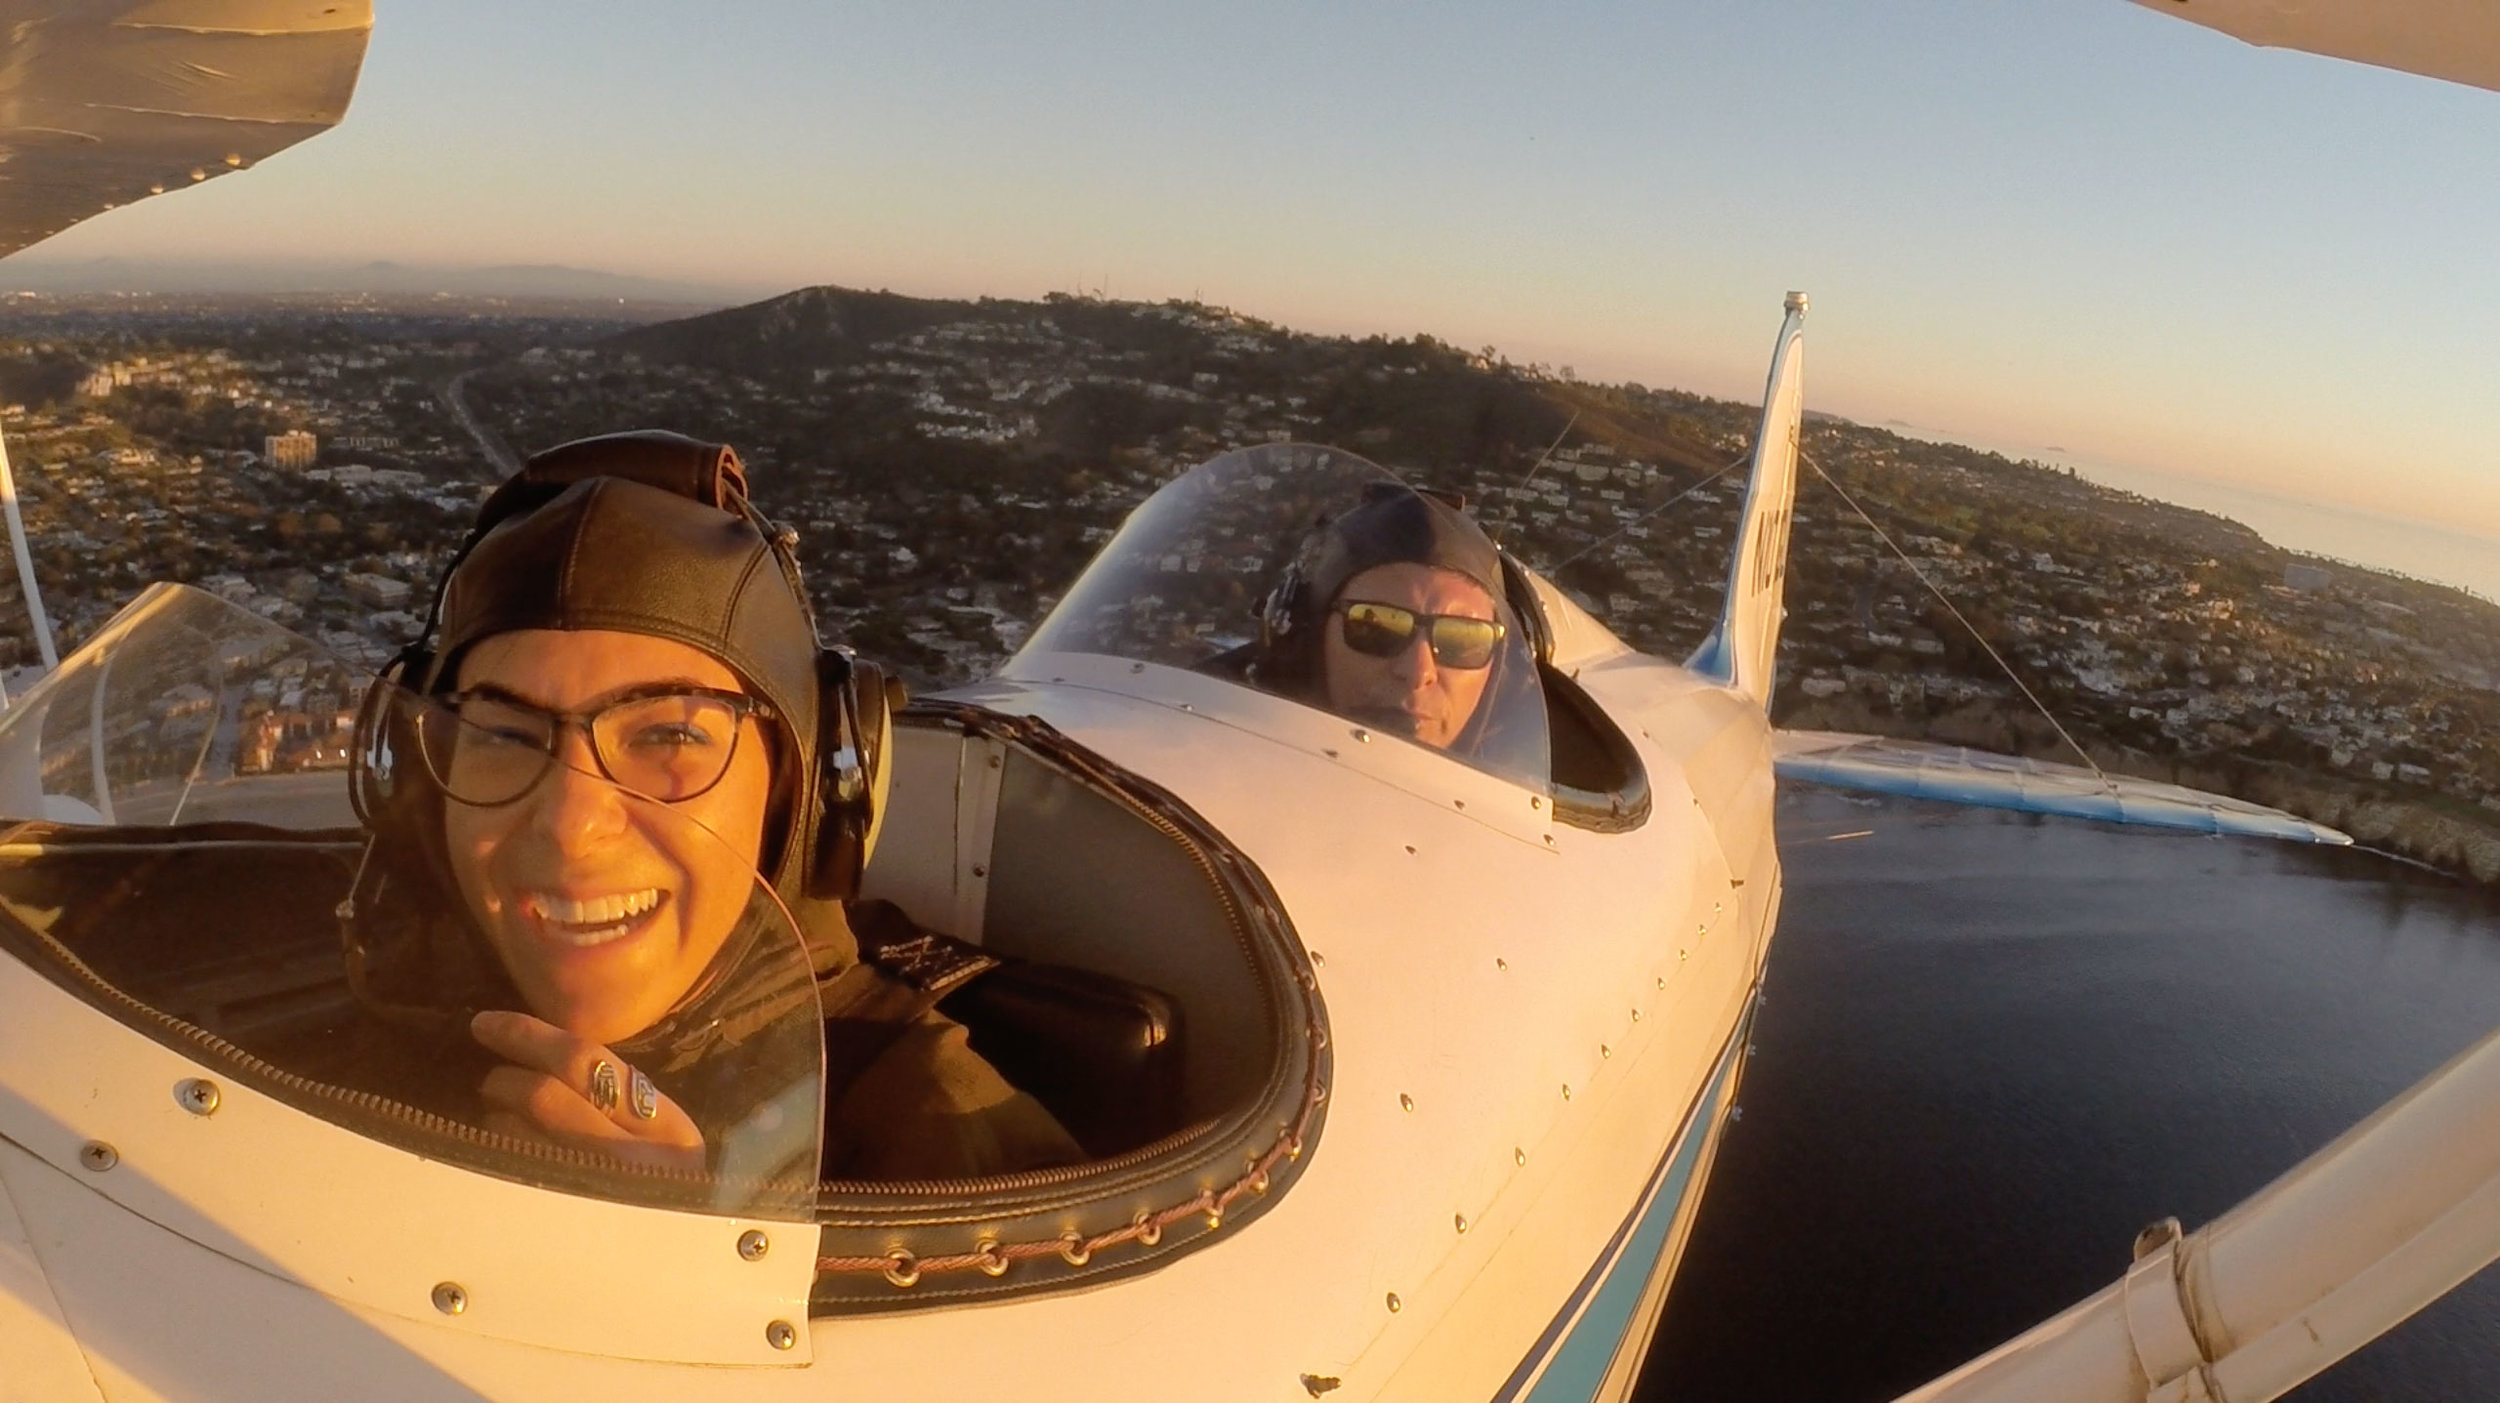 I love the emotions on Aubry's face throughout the flight. She is remarkable,warm and aware. I was impressed!